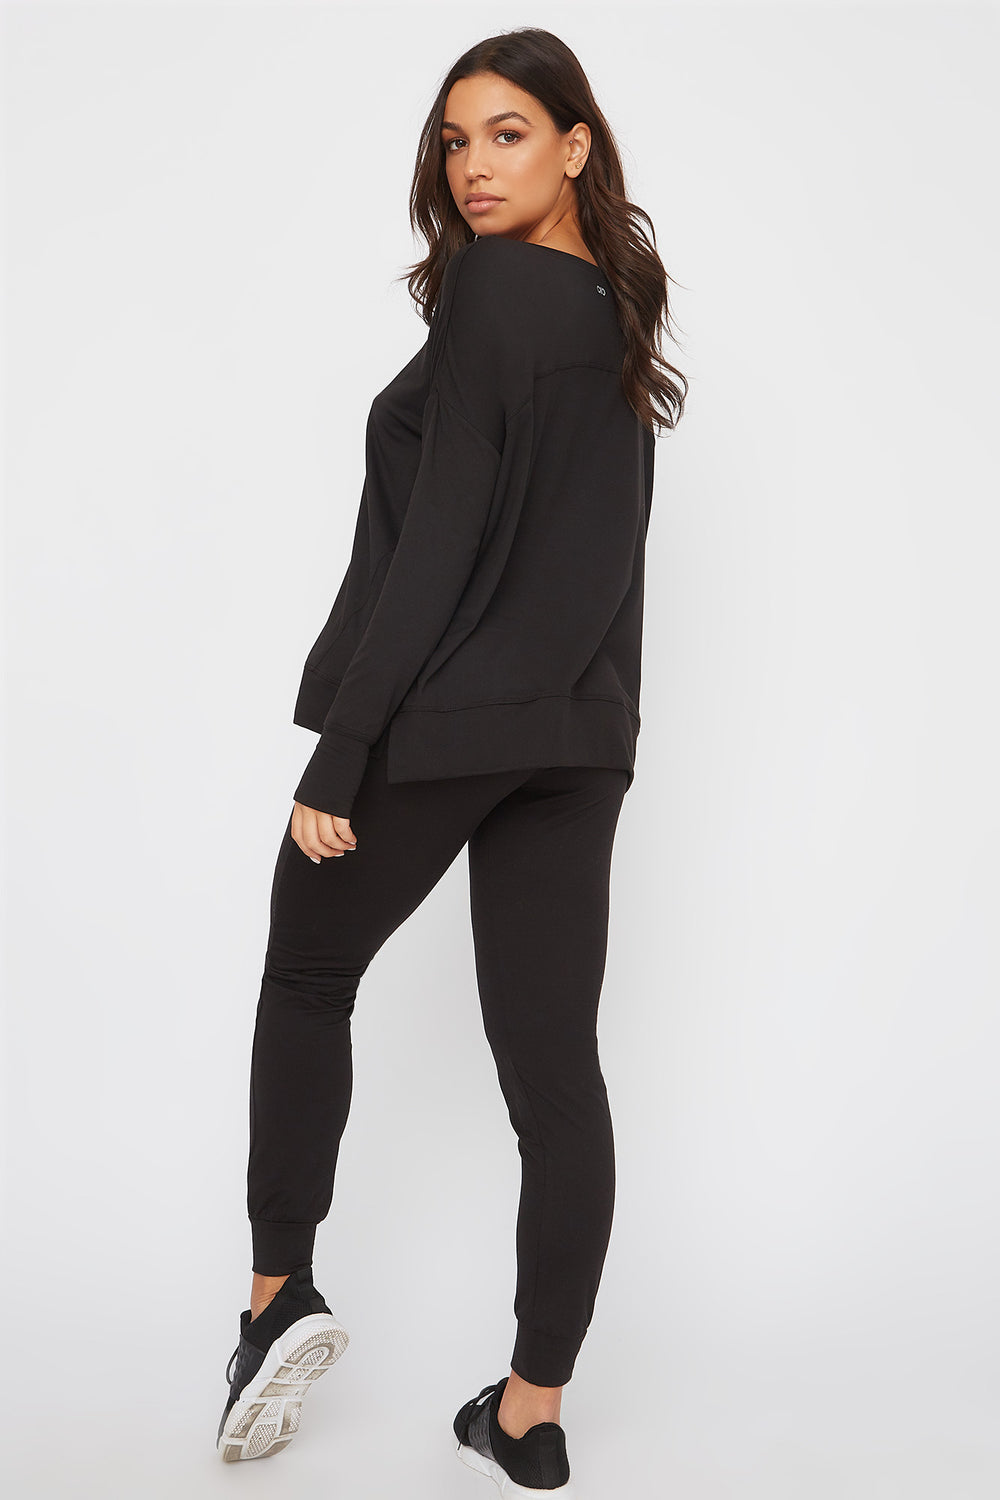 Infinite Oversized Active Long Sleeve Black